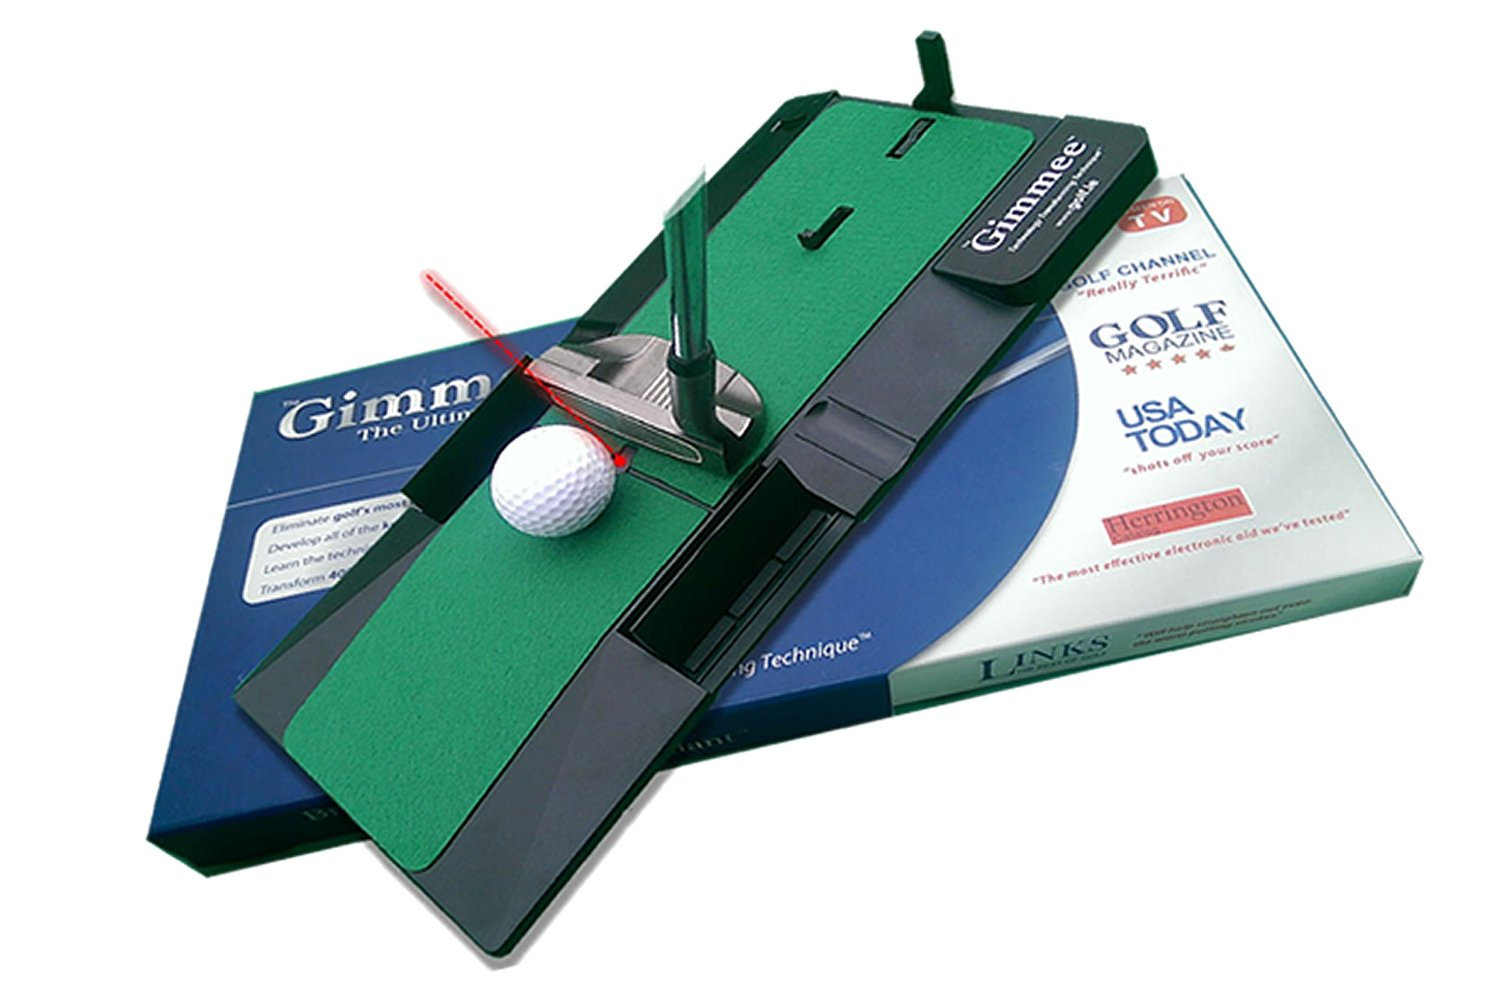 The Gimmee Putting Trainer Golf Putting Training Aids